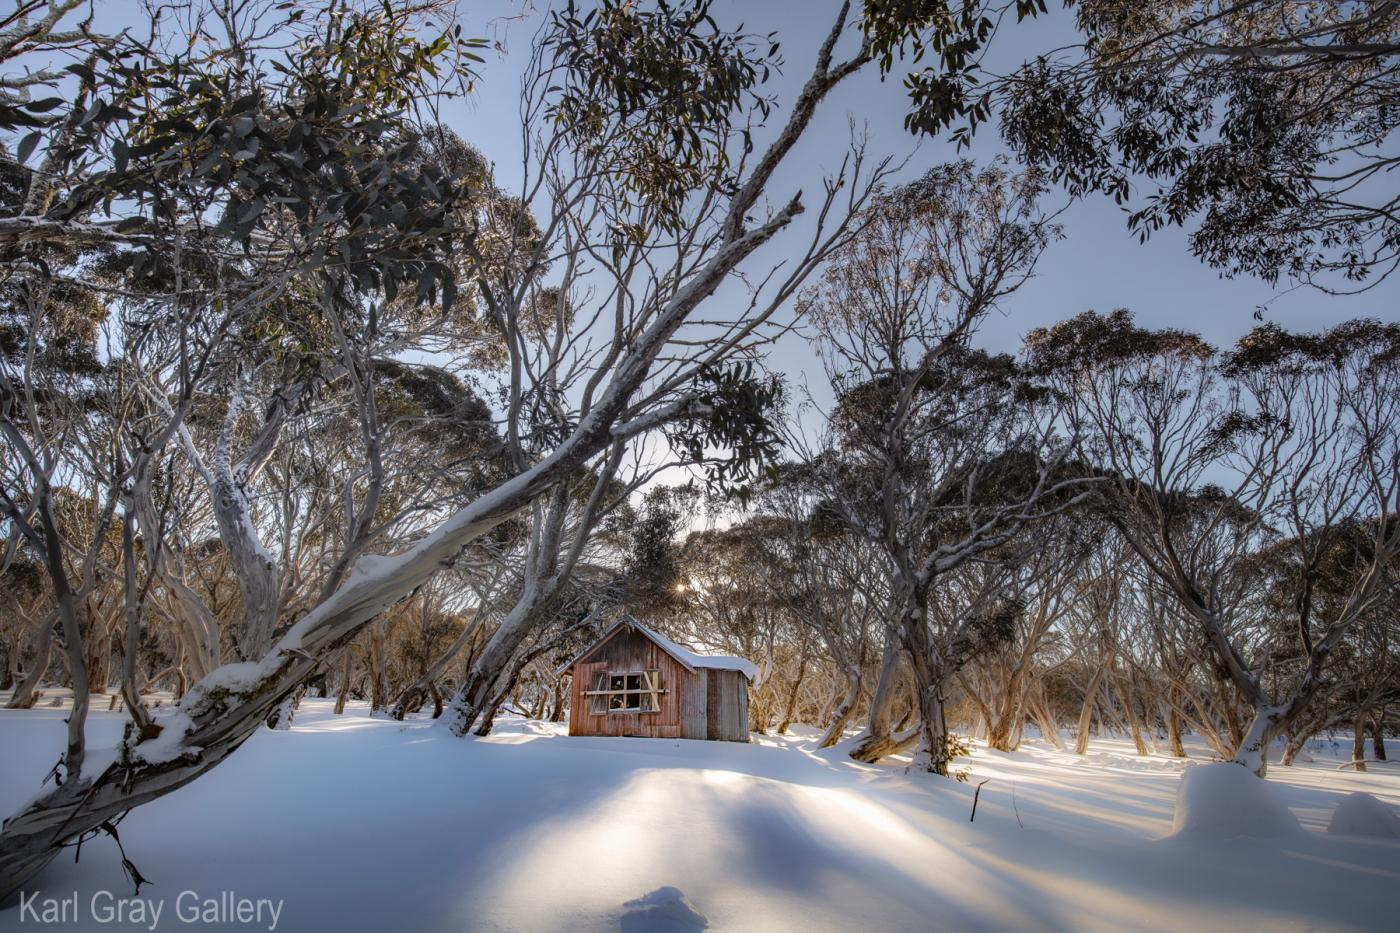 Karl Gray Gallery - jb hut, snow, mountains